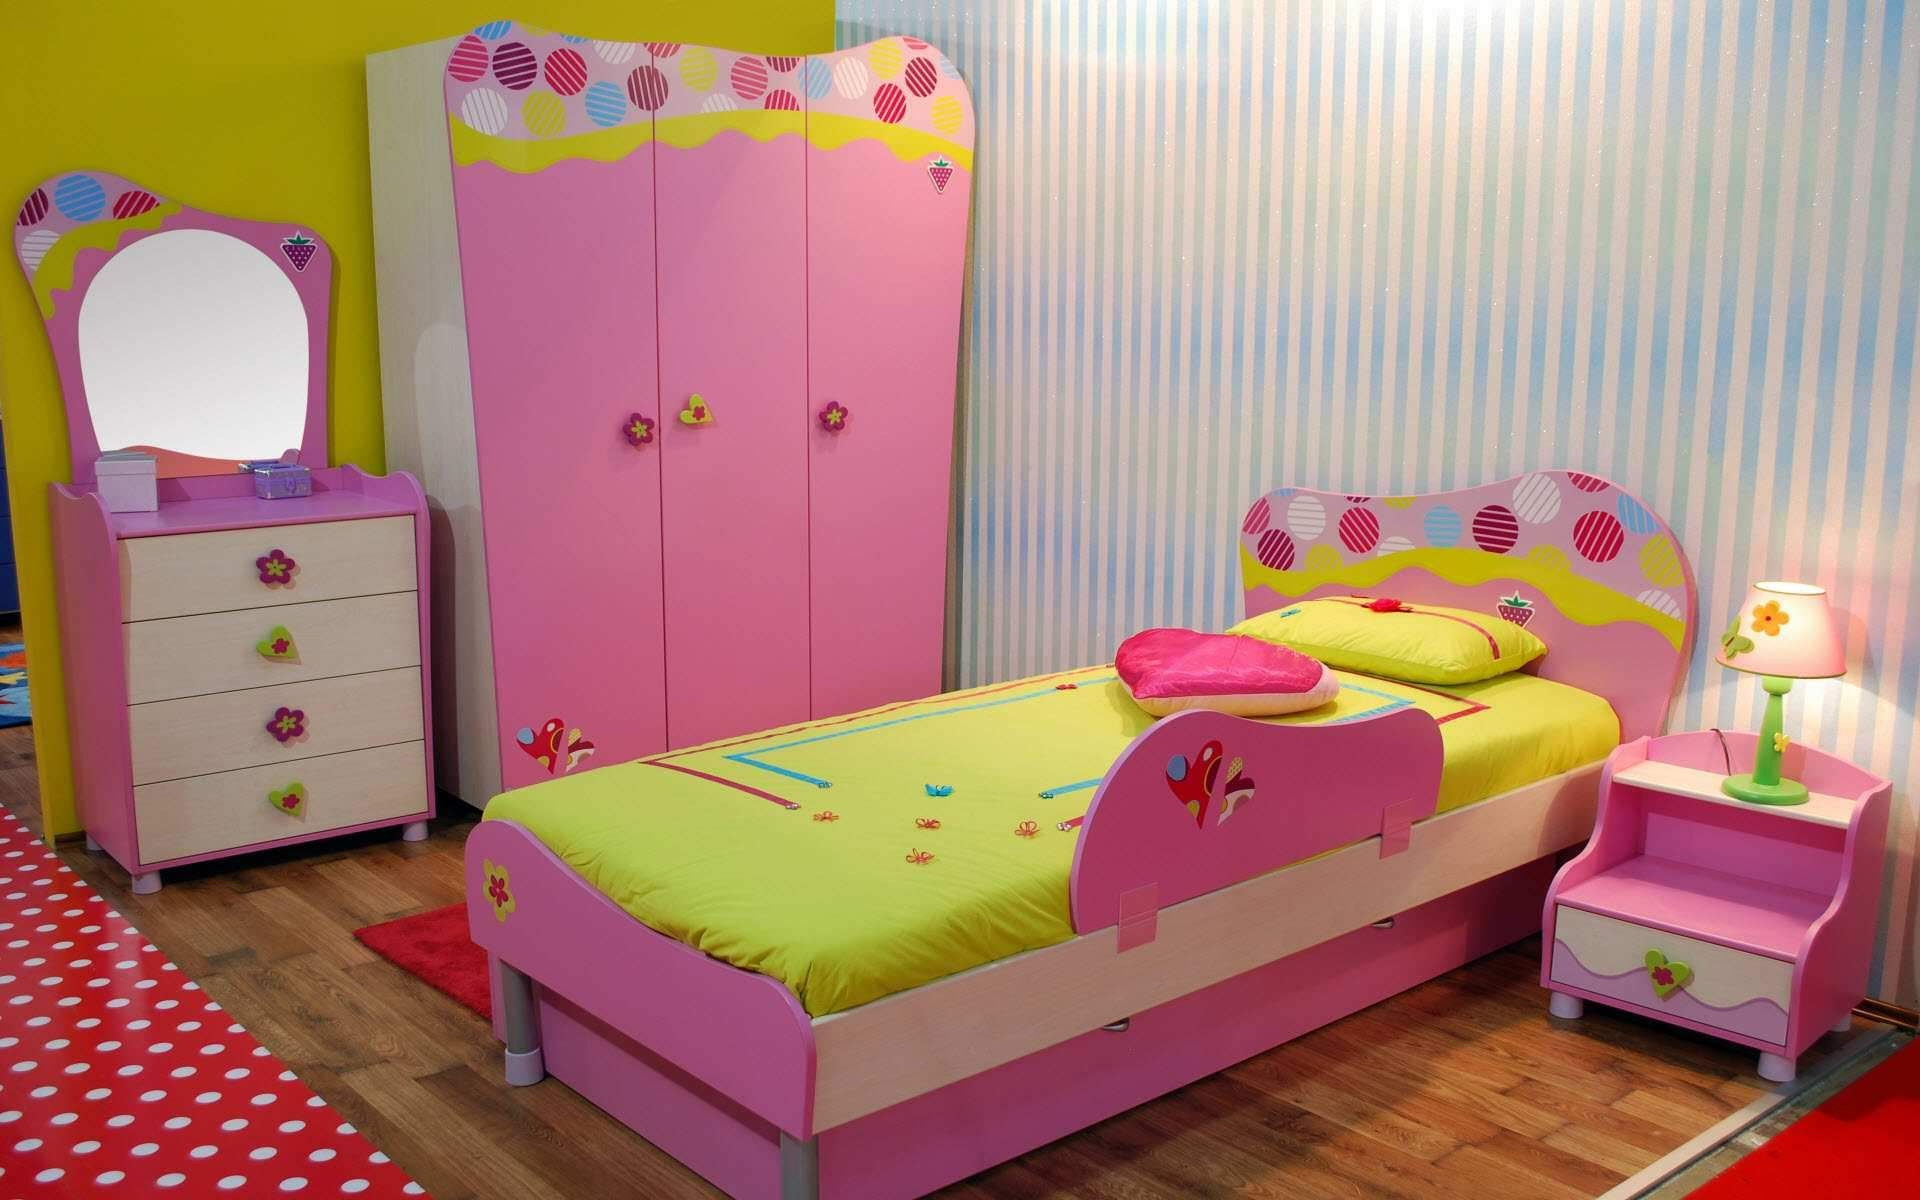 Colorful Yellow And White Themed Kids Room Paint Ideas With Cute Pink Wood  Bed Frame On The Brown Wood Flooring That Have Yellow Bedding And Simple  Pink ...